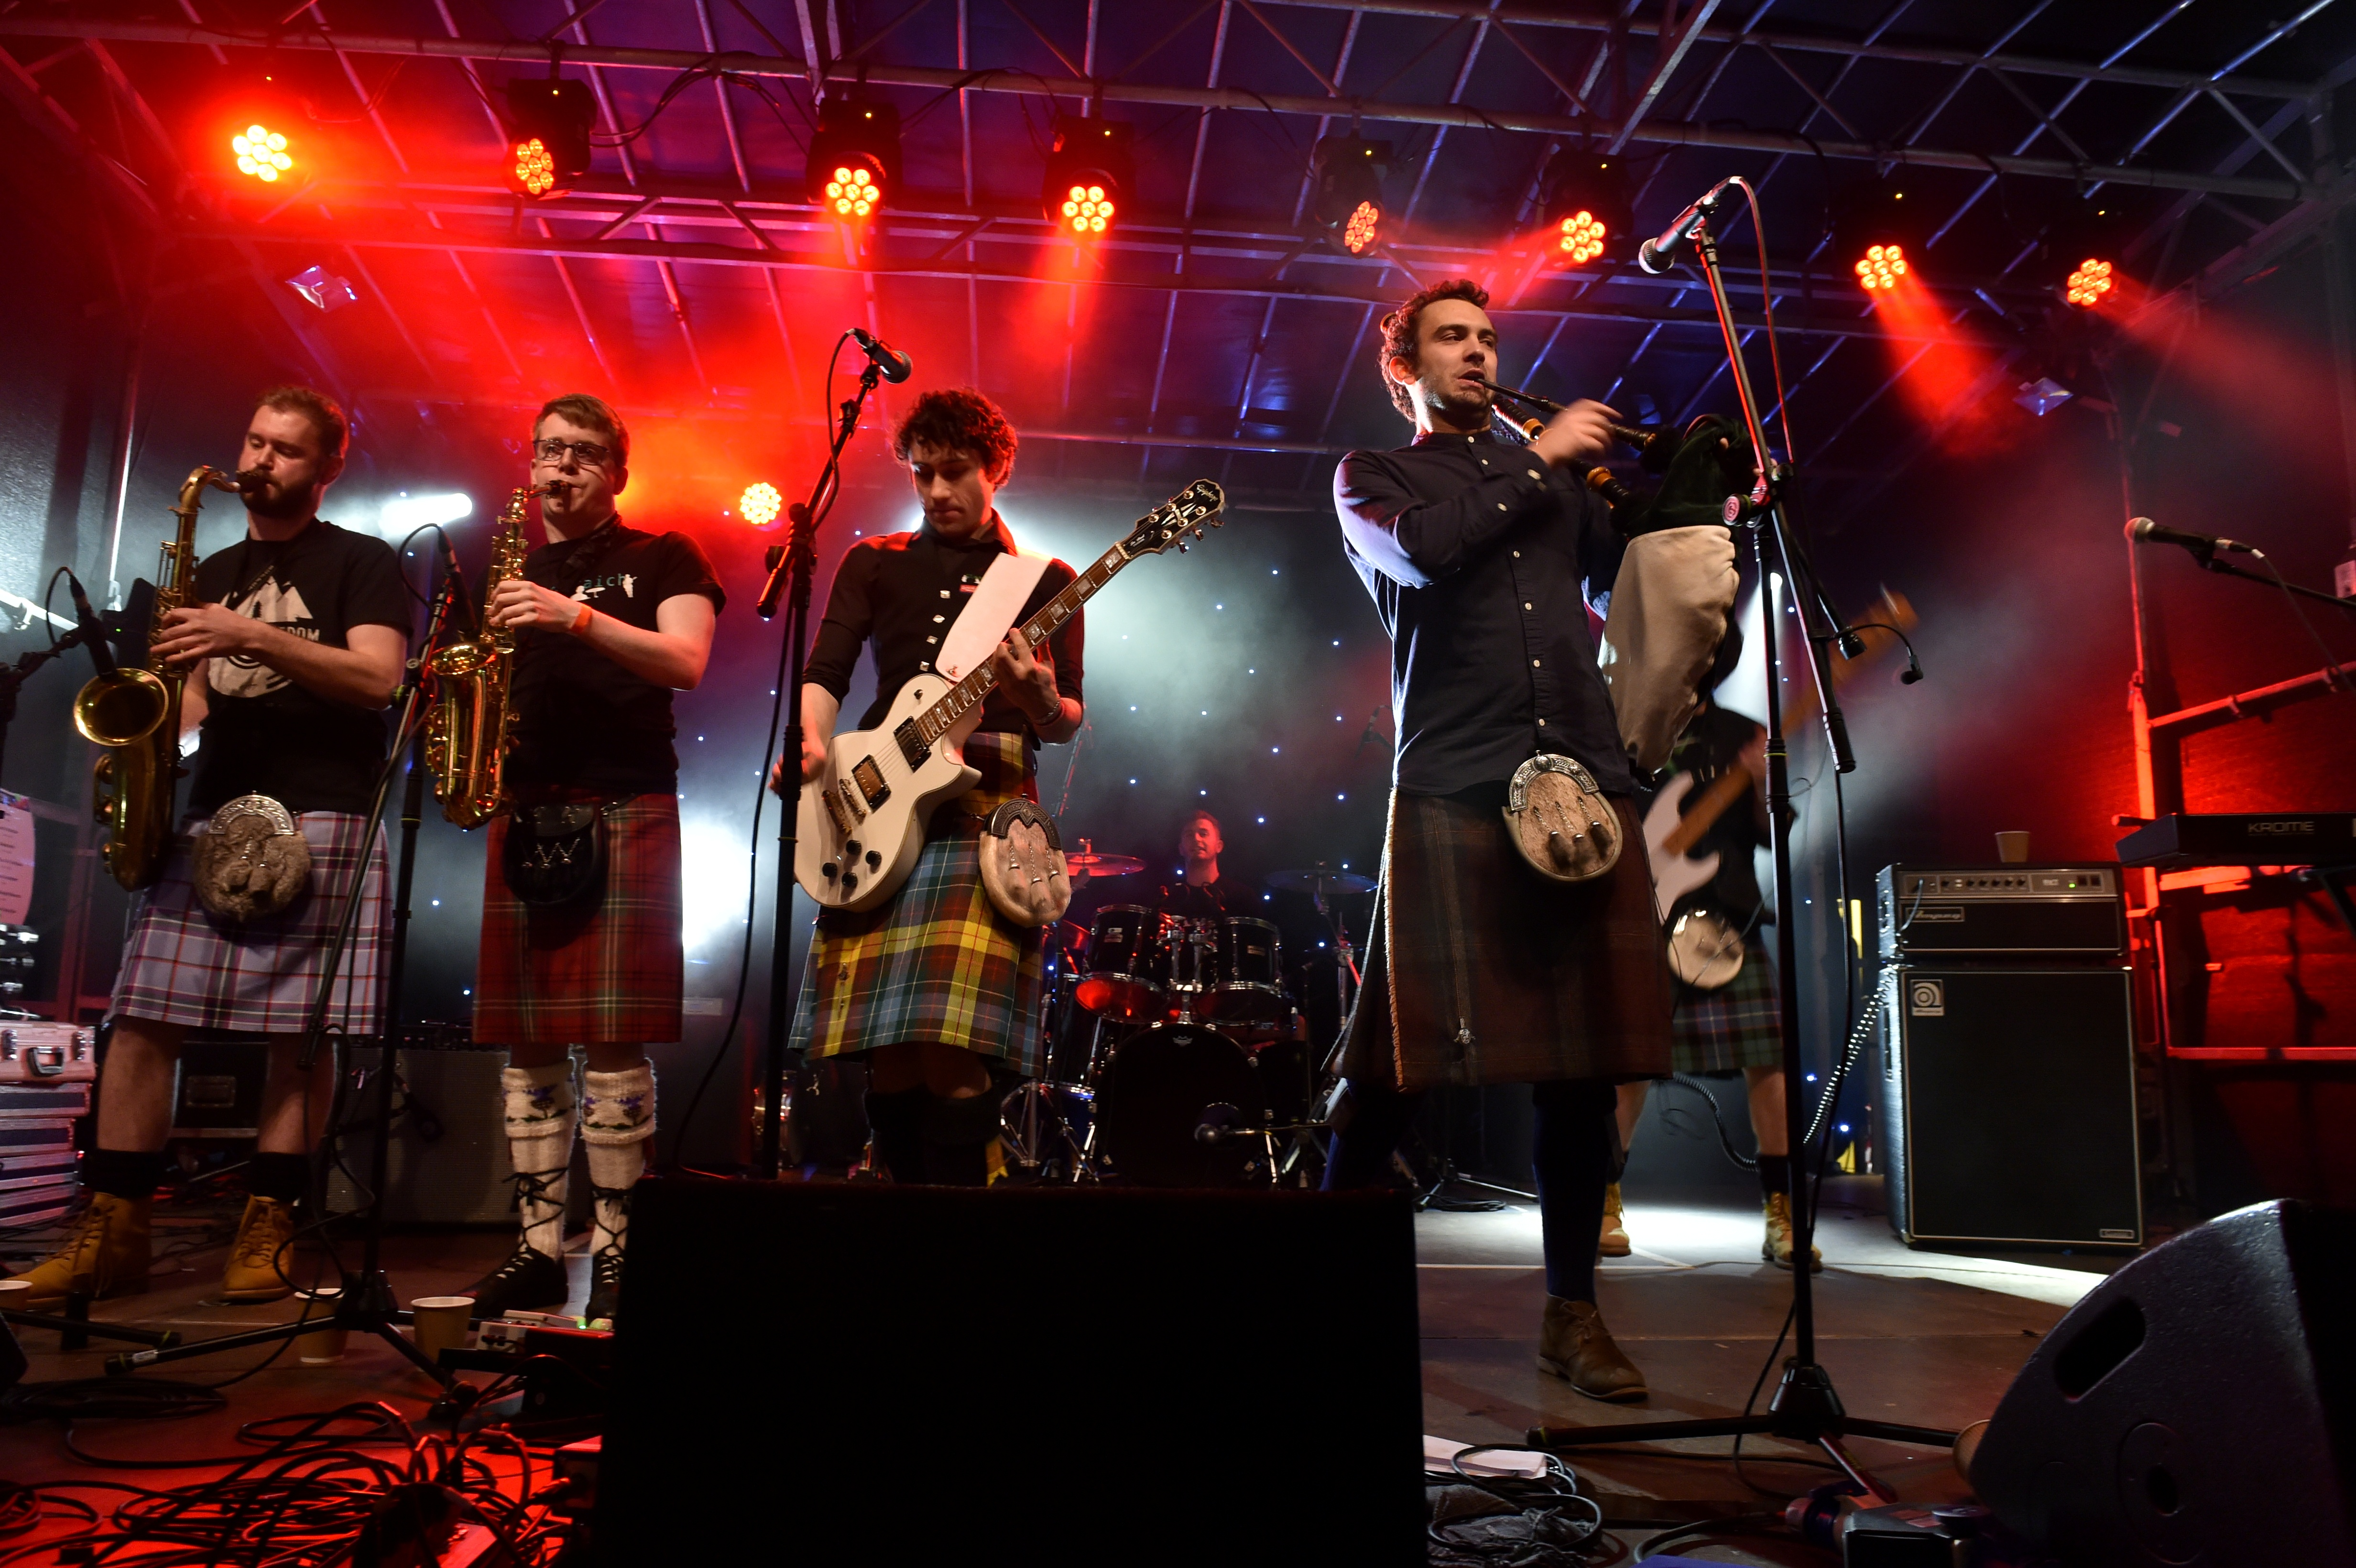 Celtic rock band Gleadhraich played a barnstorming set on the Schoolhill stage